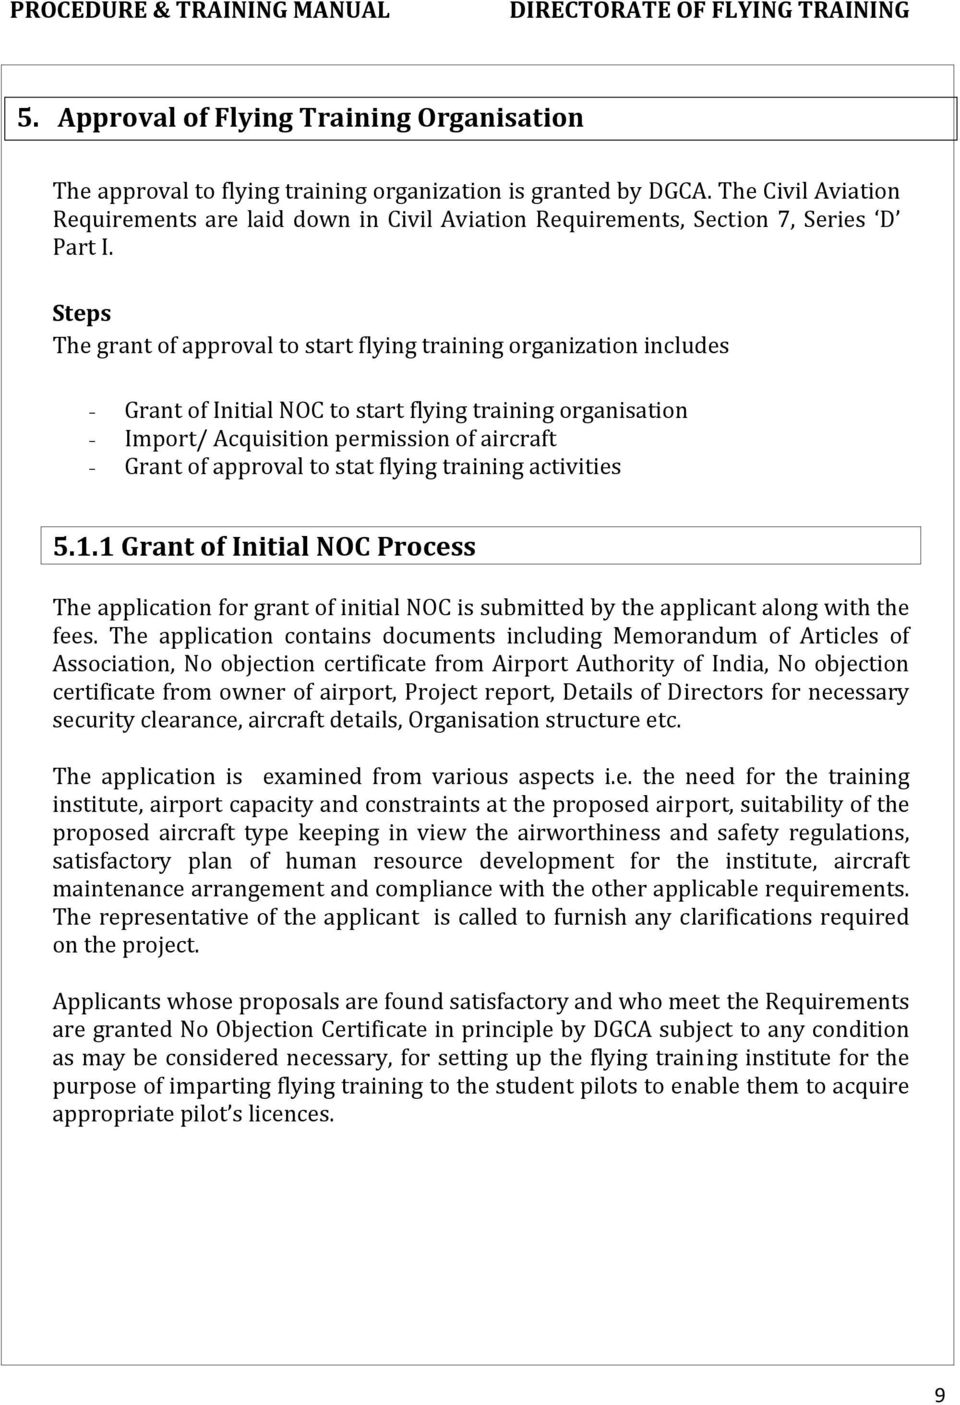 Steps The grant of approval to start flying training organization includes - Grant of Initial NOC to start flying training organisation - Import/ Acquisition permission of aircraft - Grant of